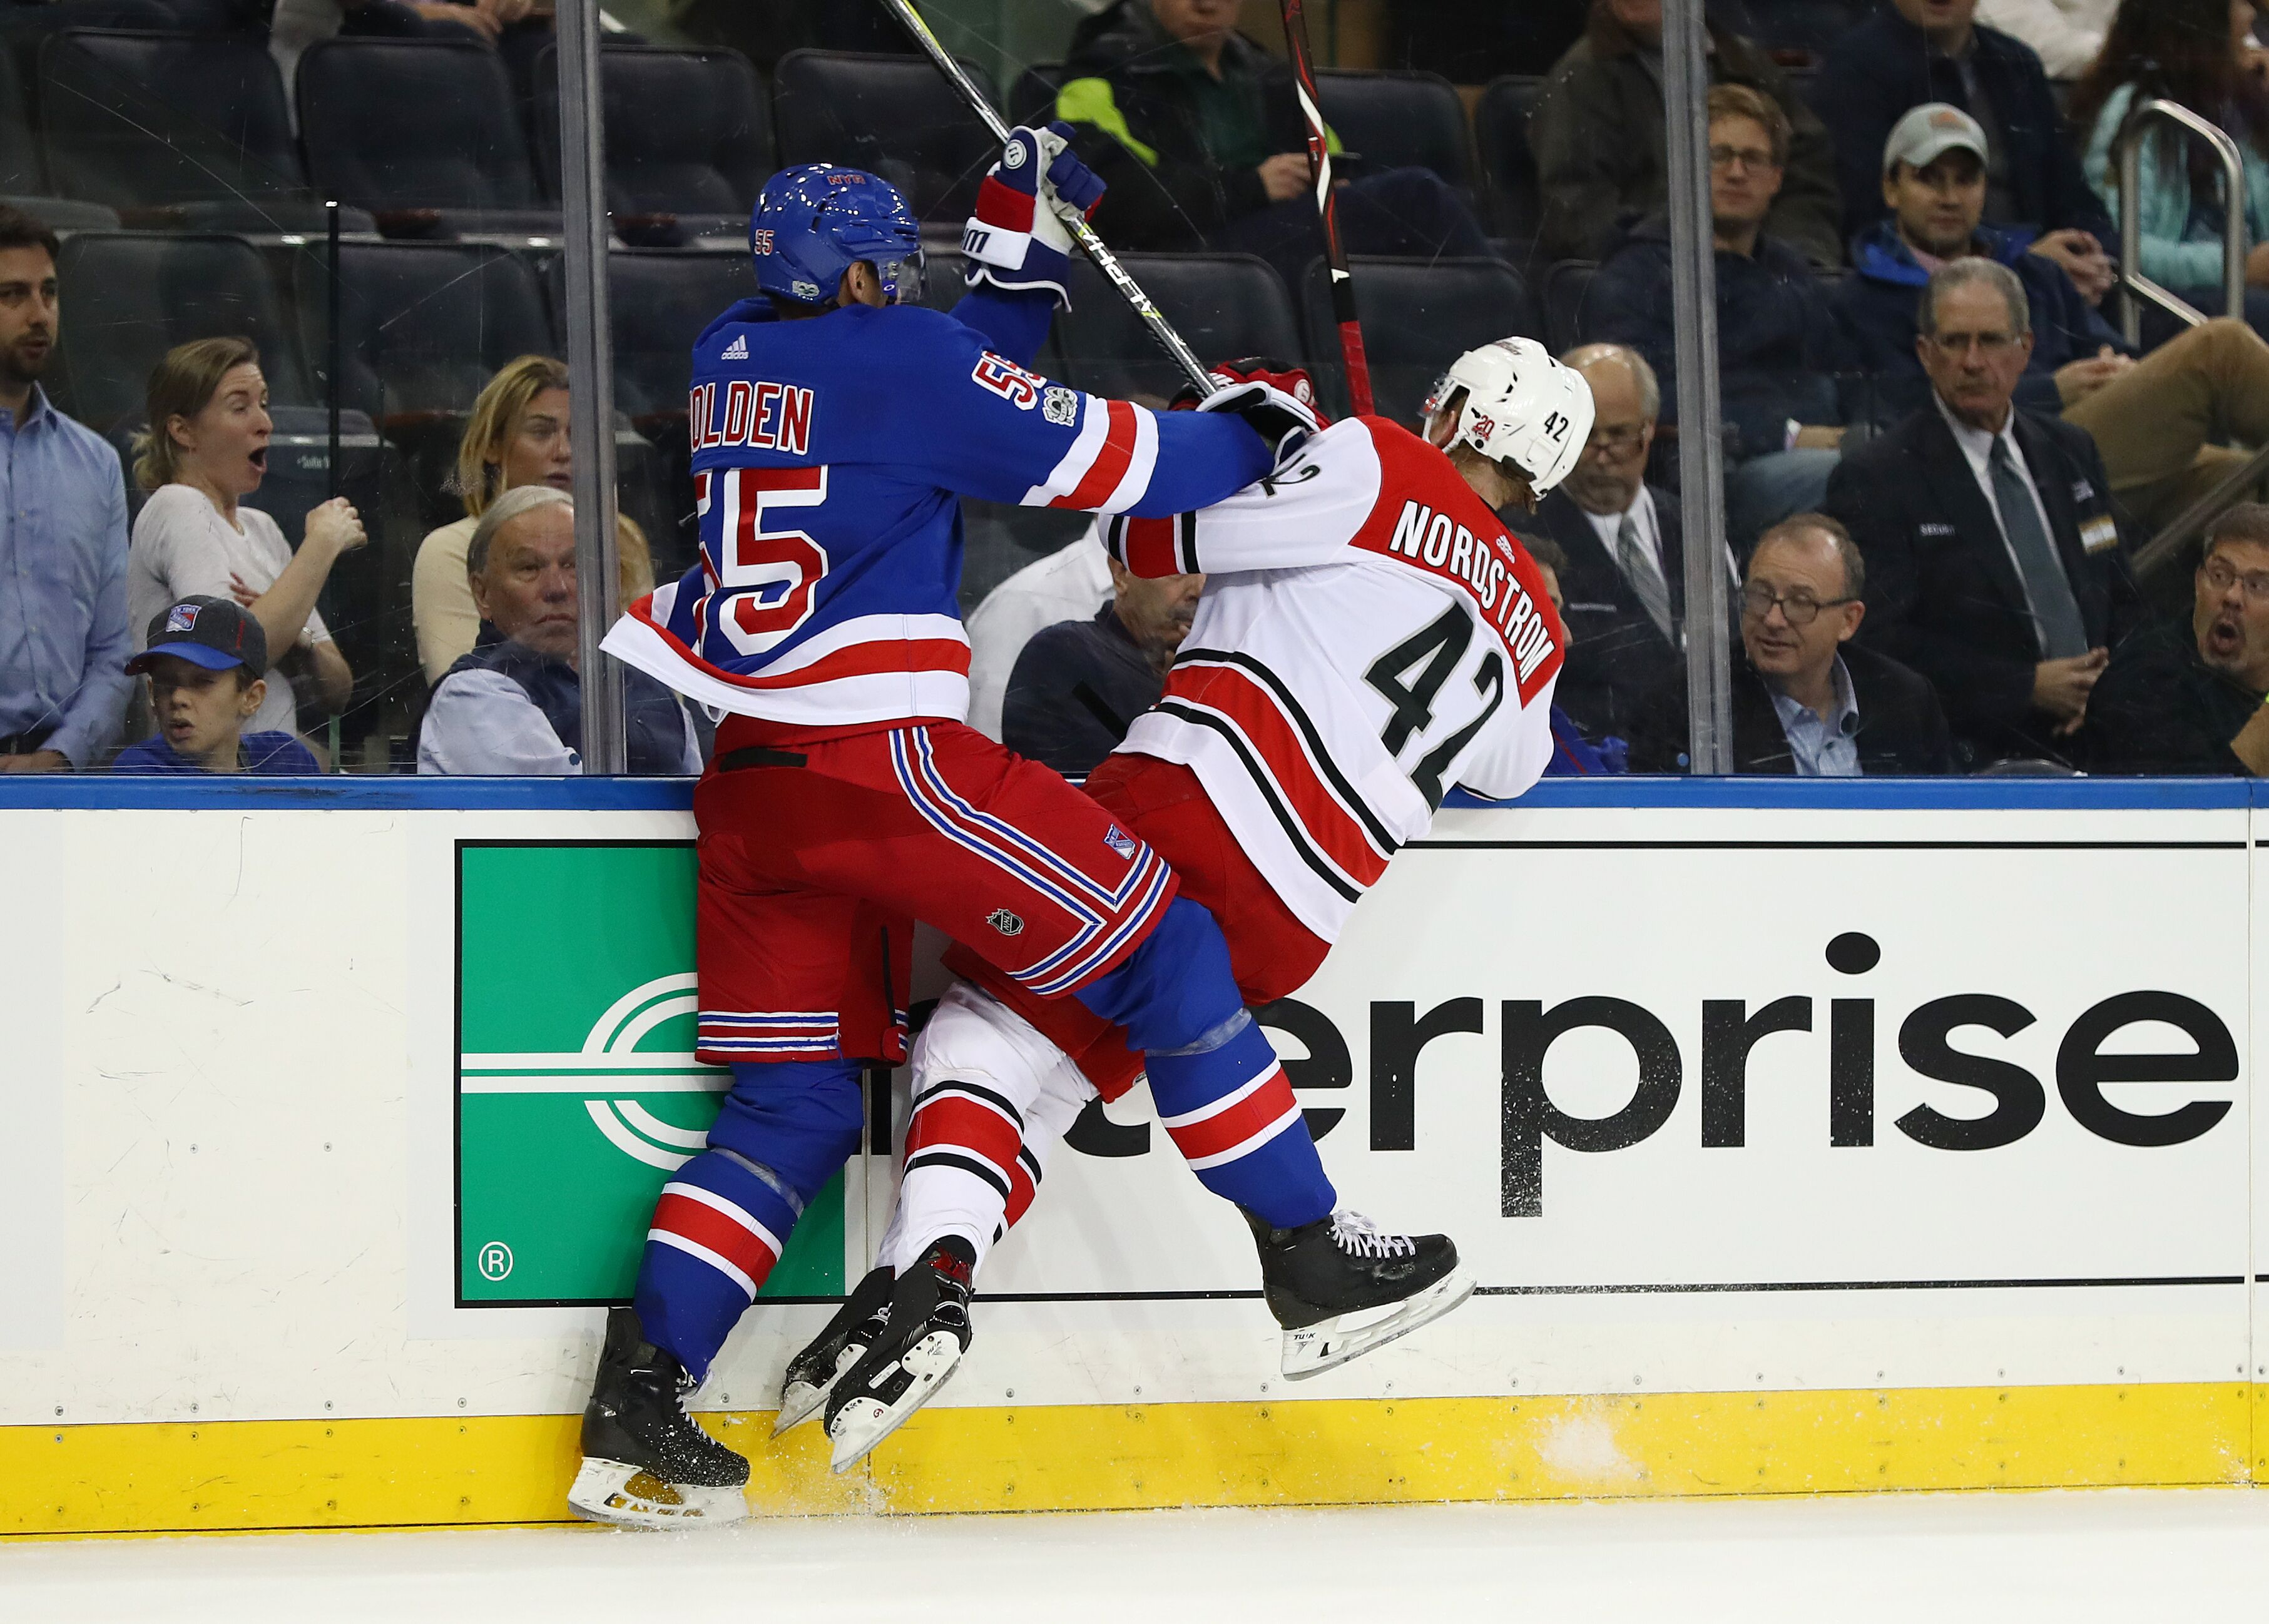 885063332-carolina-hurricanes-v-new-york-rangers.jpg